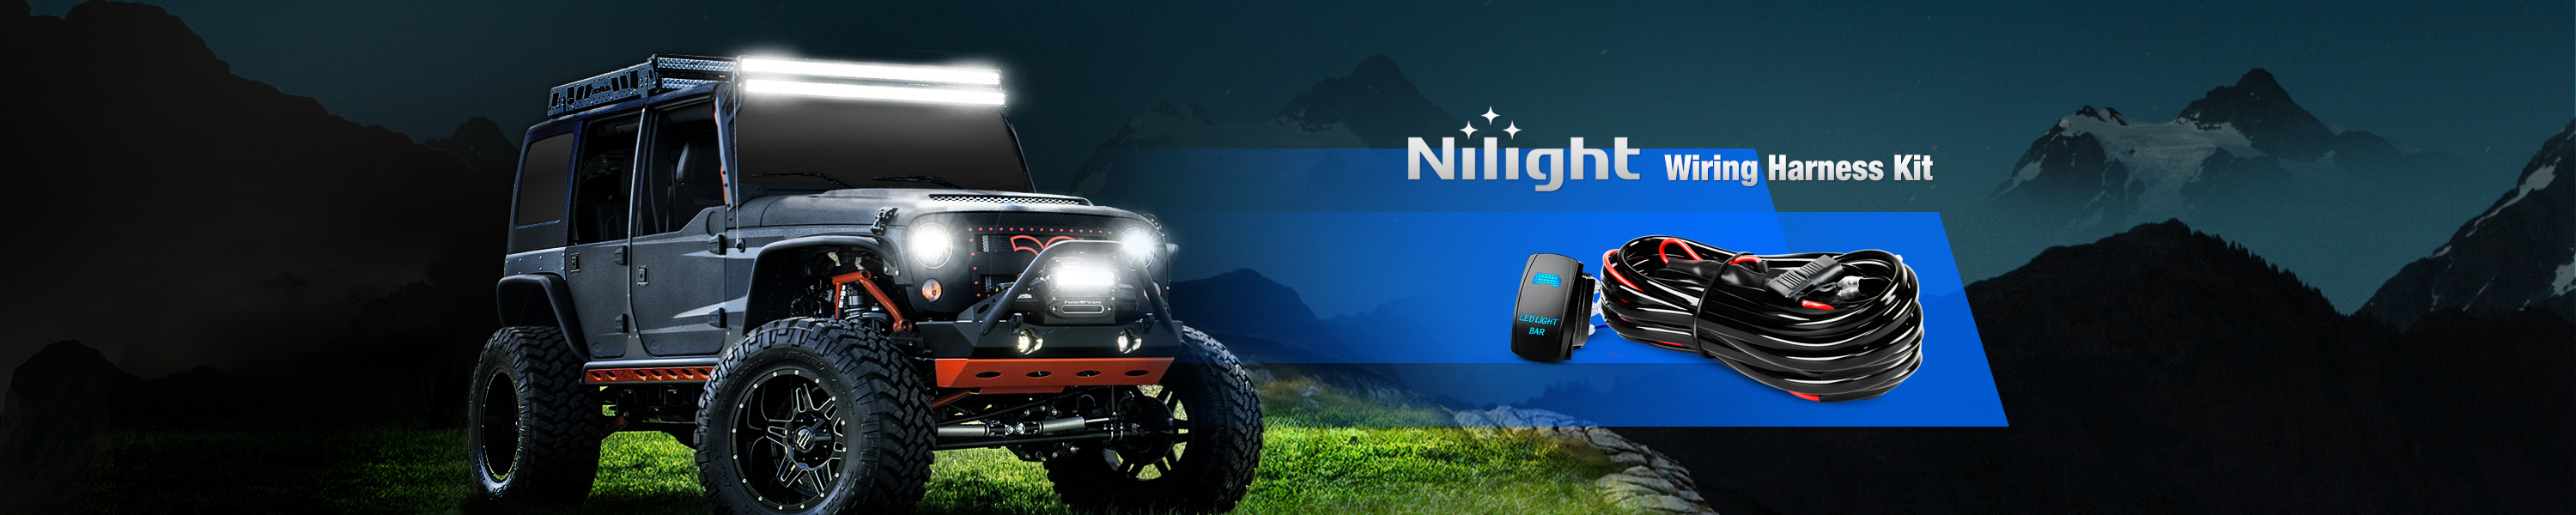 Nilight Wiring Harness Off Road